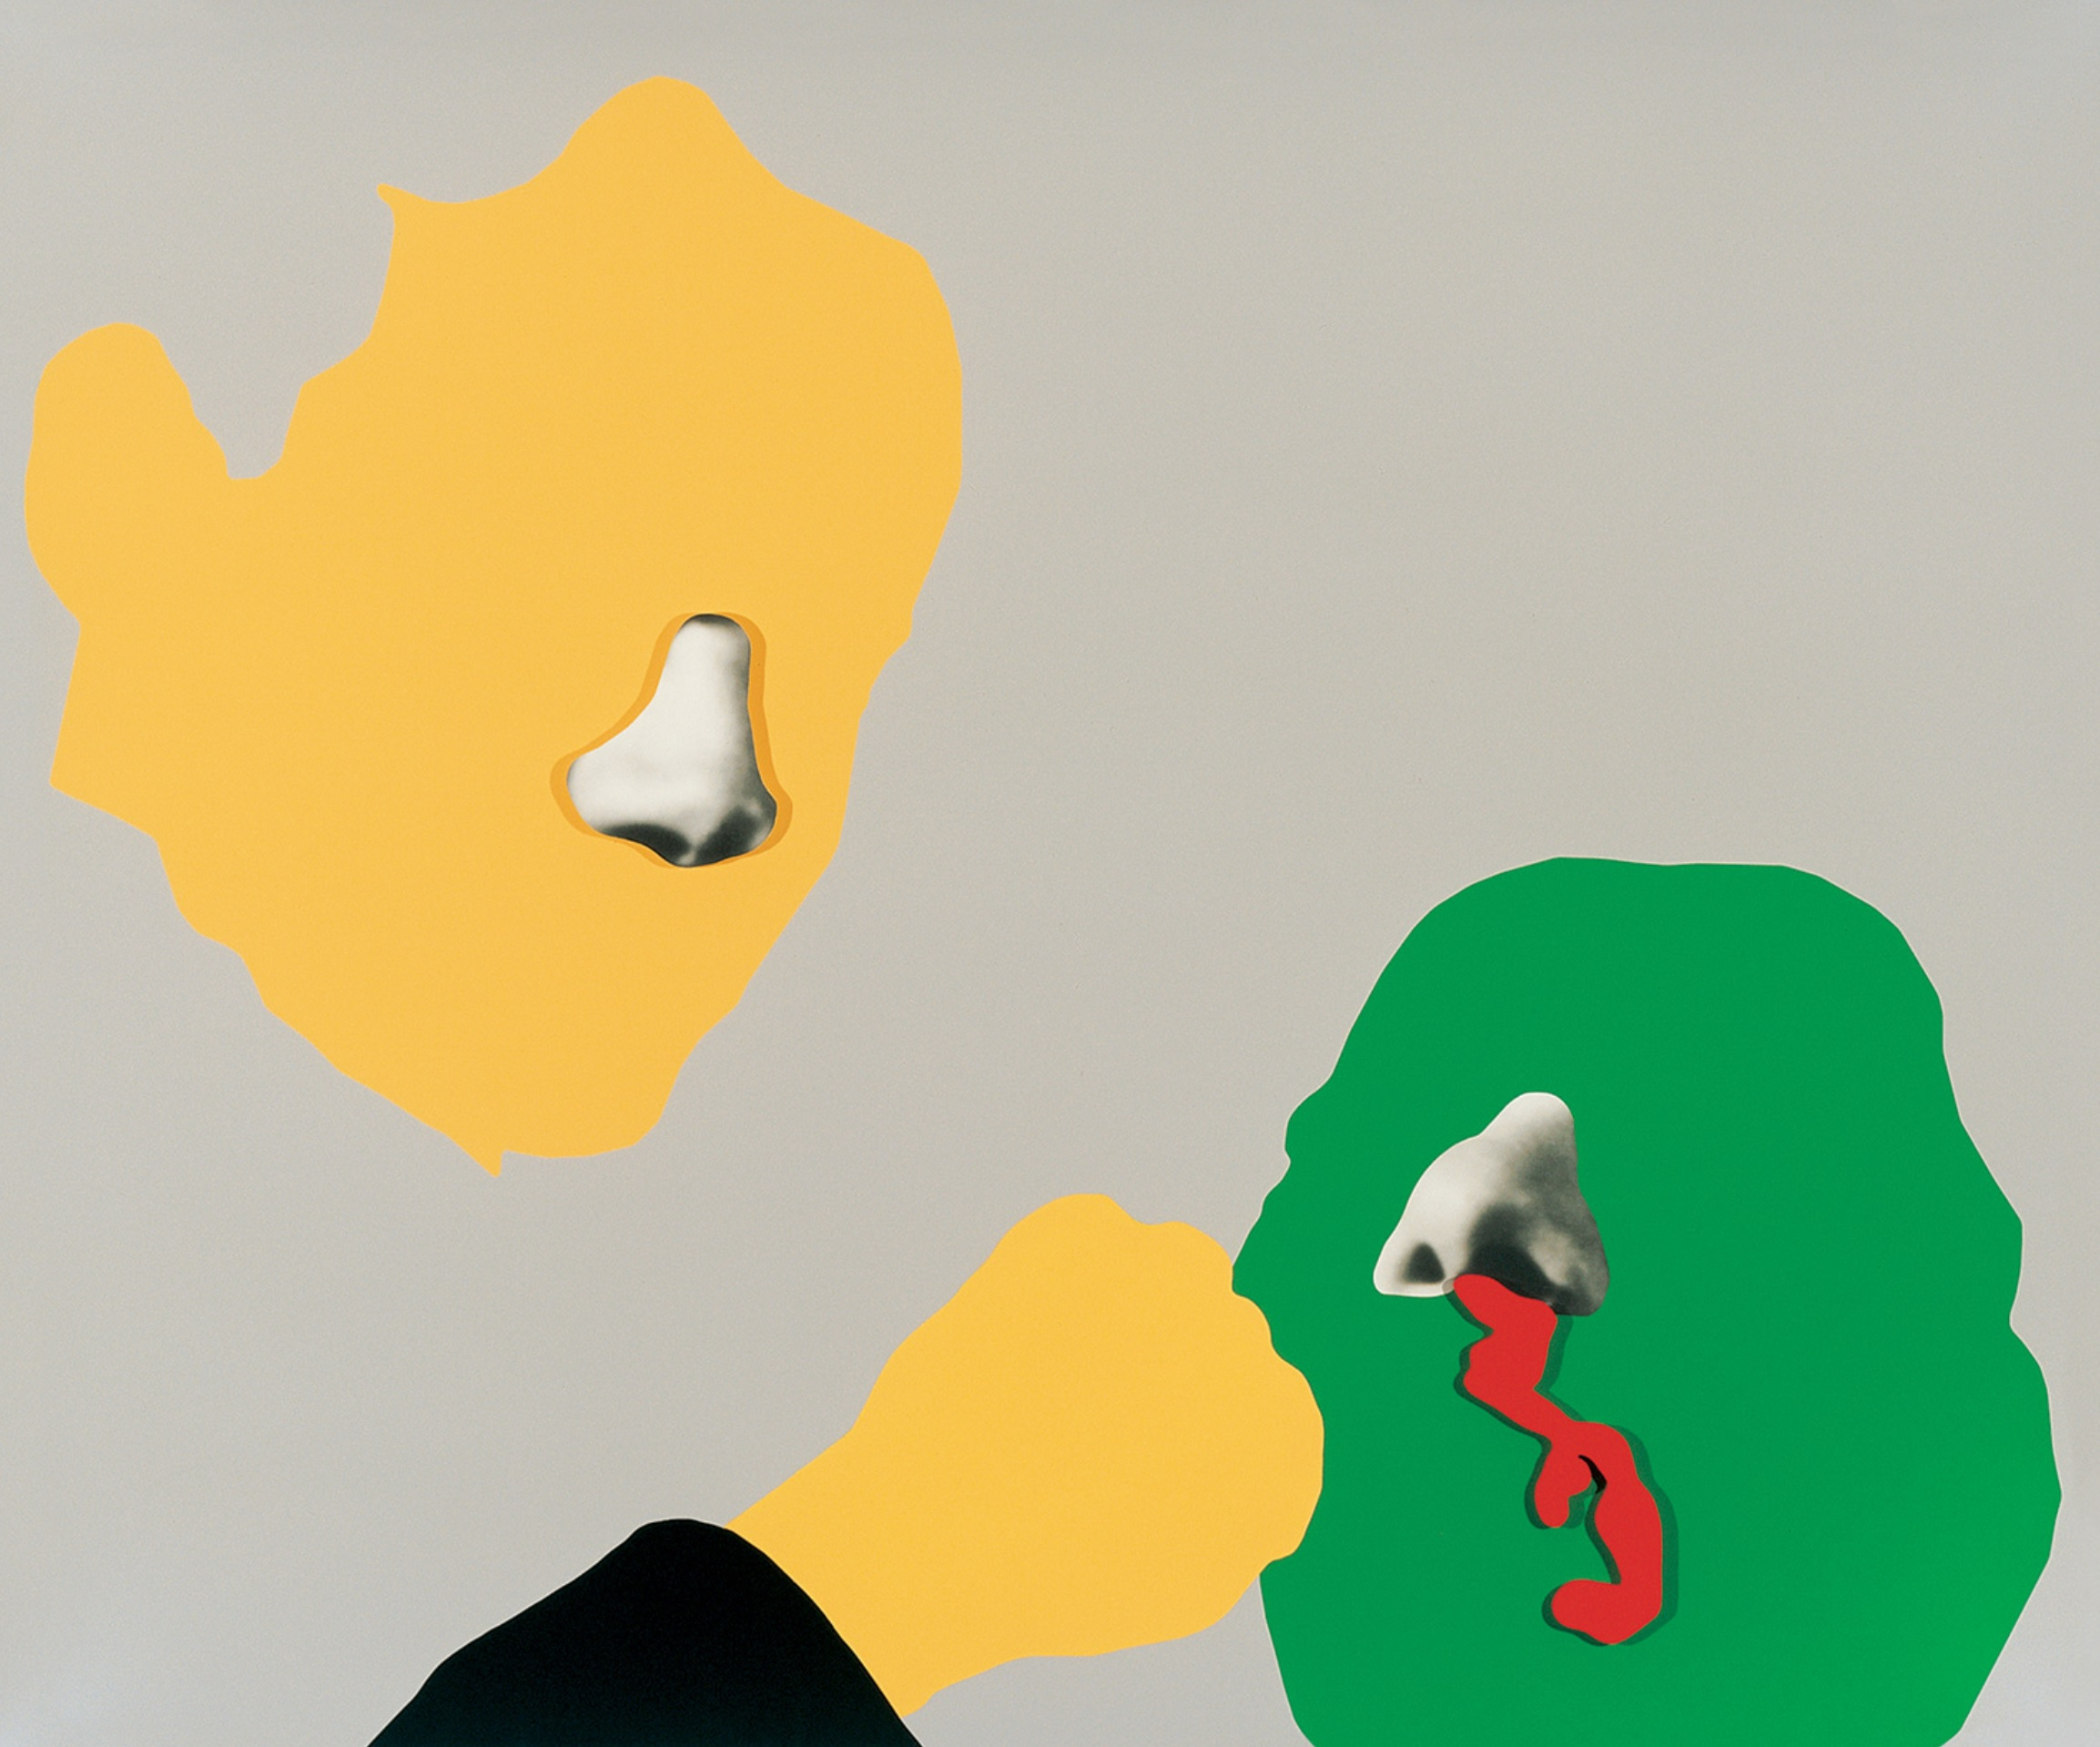 An abstract work of two faces in solid yellow and green, with grayscale noses. The green face has blood coming from its nose.